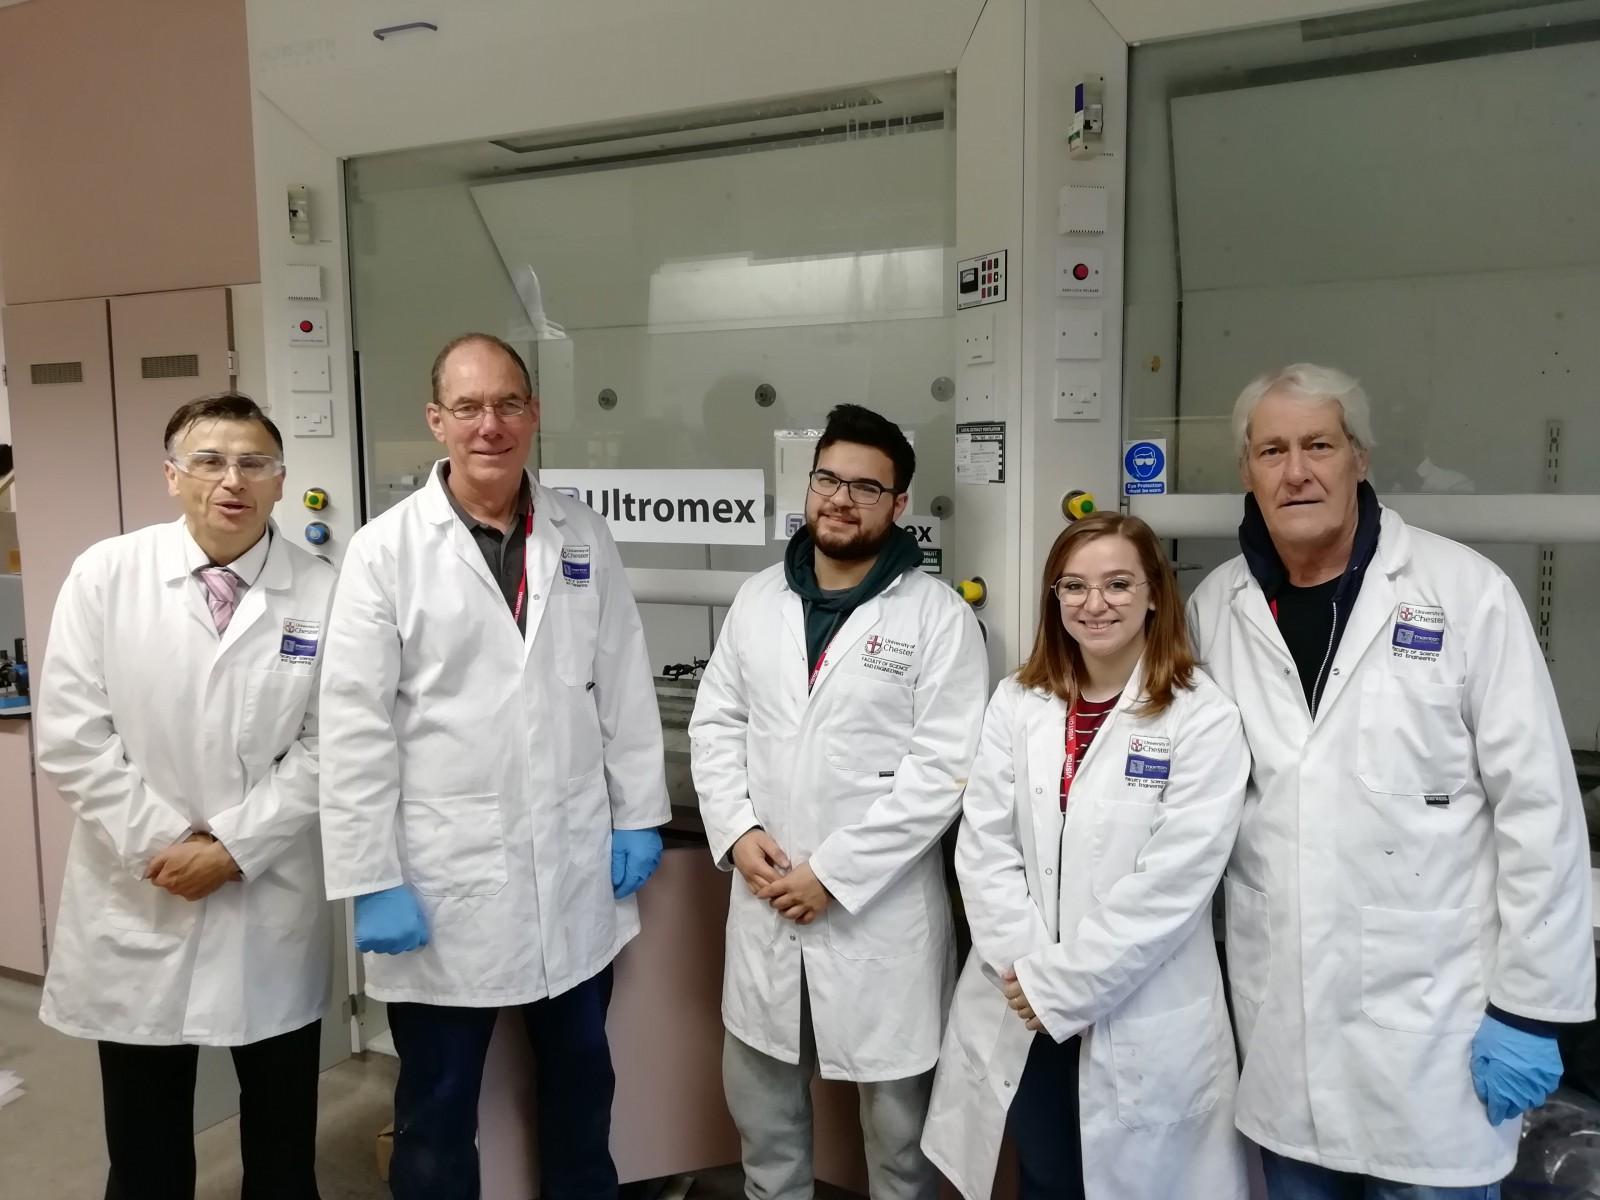 Professor Steve Wilkinson, Head of Chemical Engineering, University of Chester; Tim Smith, Projects Engineer, Ultromex; Dion Noorani; Emily Ratcliffe, Analytical Chemist, Ultromex; Chris Evans, Analytical Chemist, Ultromex.